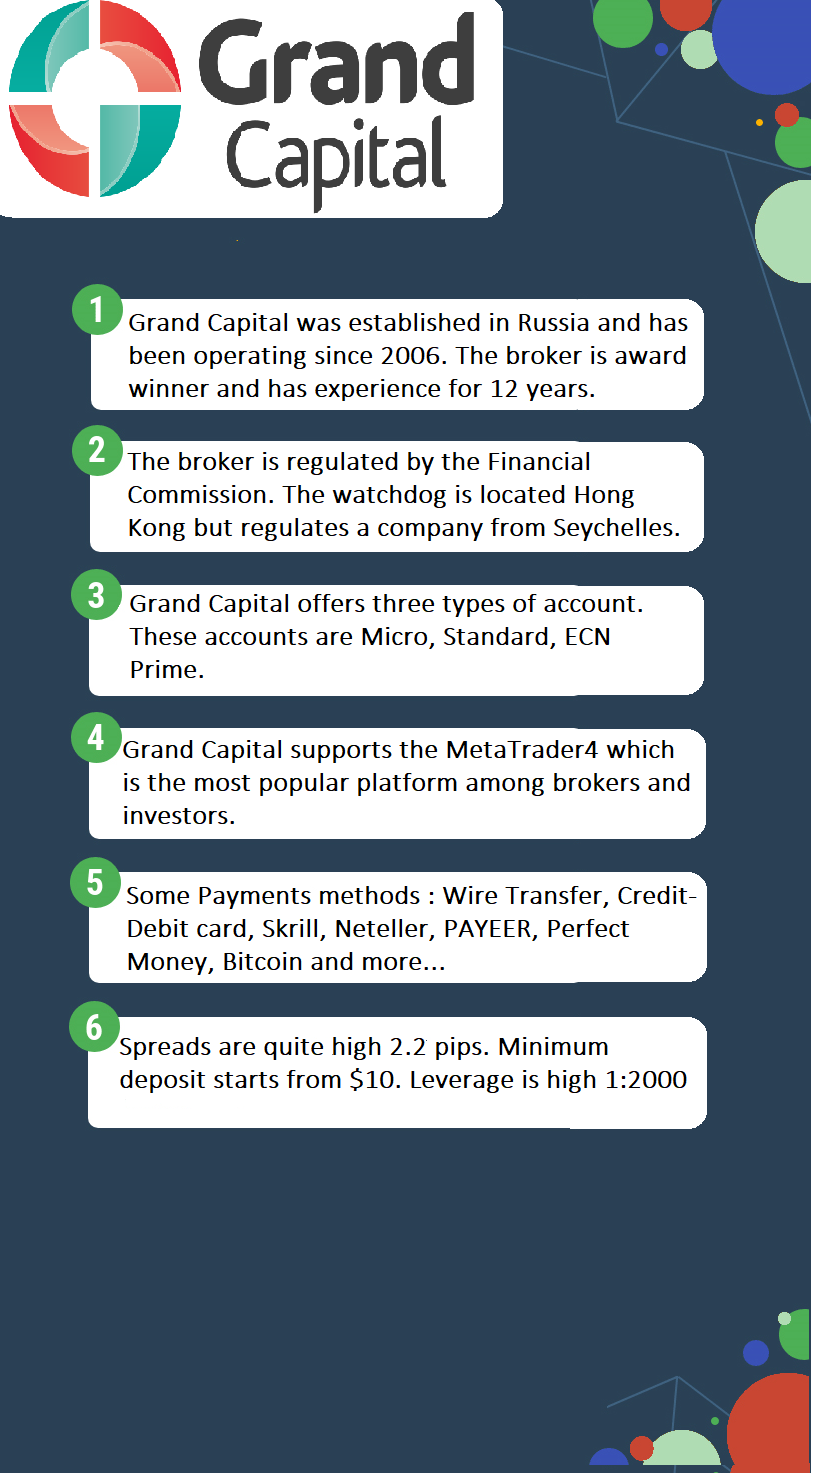 Grand Capital Infographic